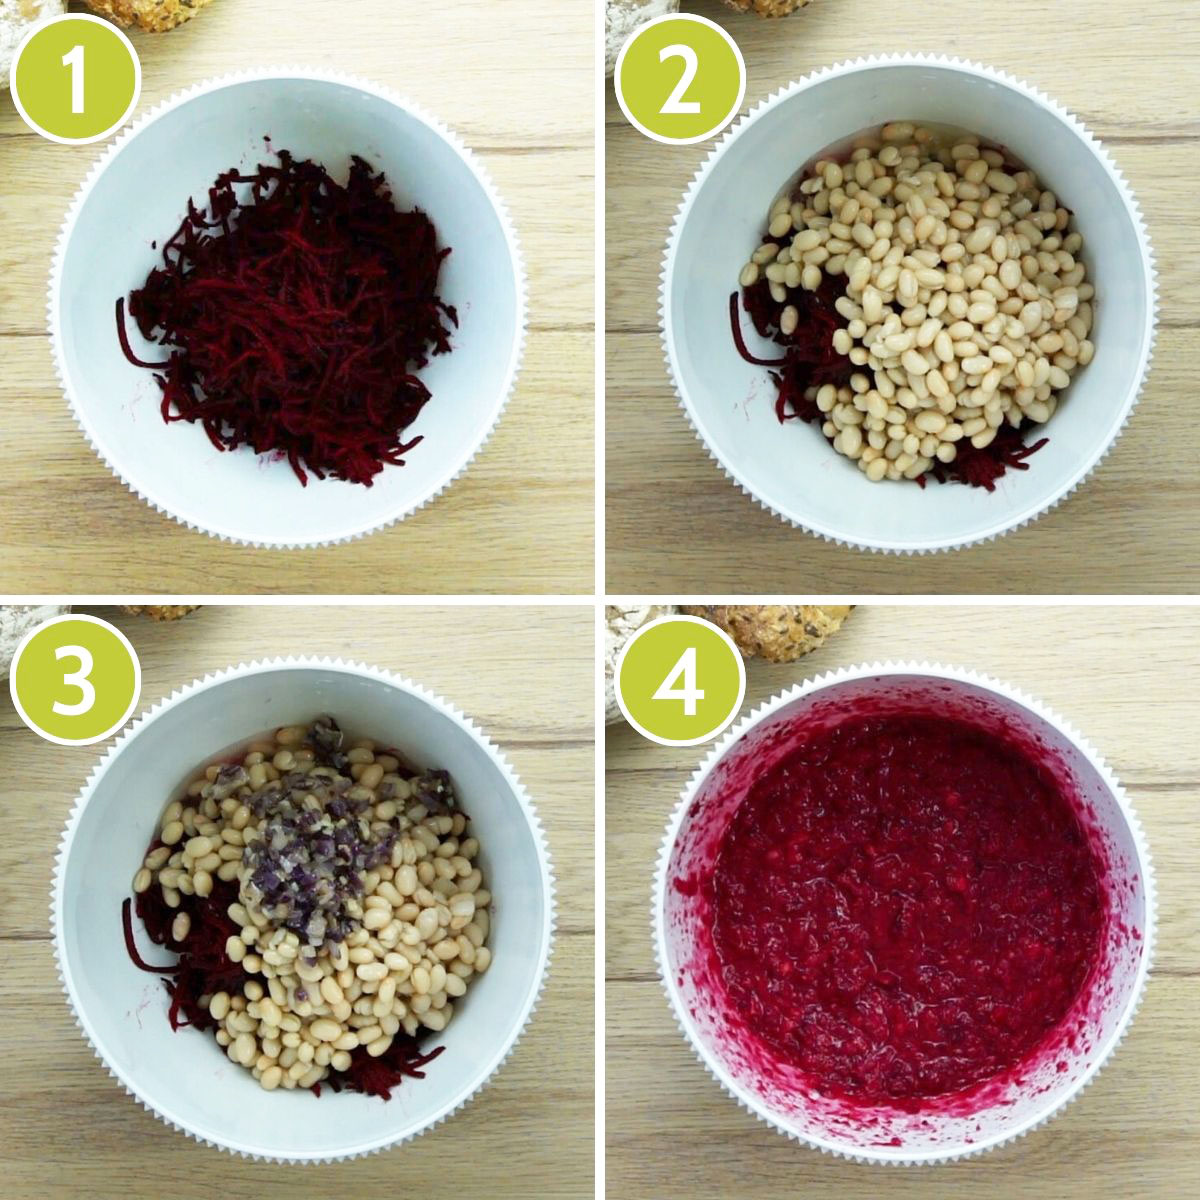 4 photo collage of the first 4 steps to make beet burger showing a white bowl with first grated purple beet, then with white beans on top, then cooked onion and garlic on top. The last show a purple mixture after mixing.